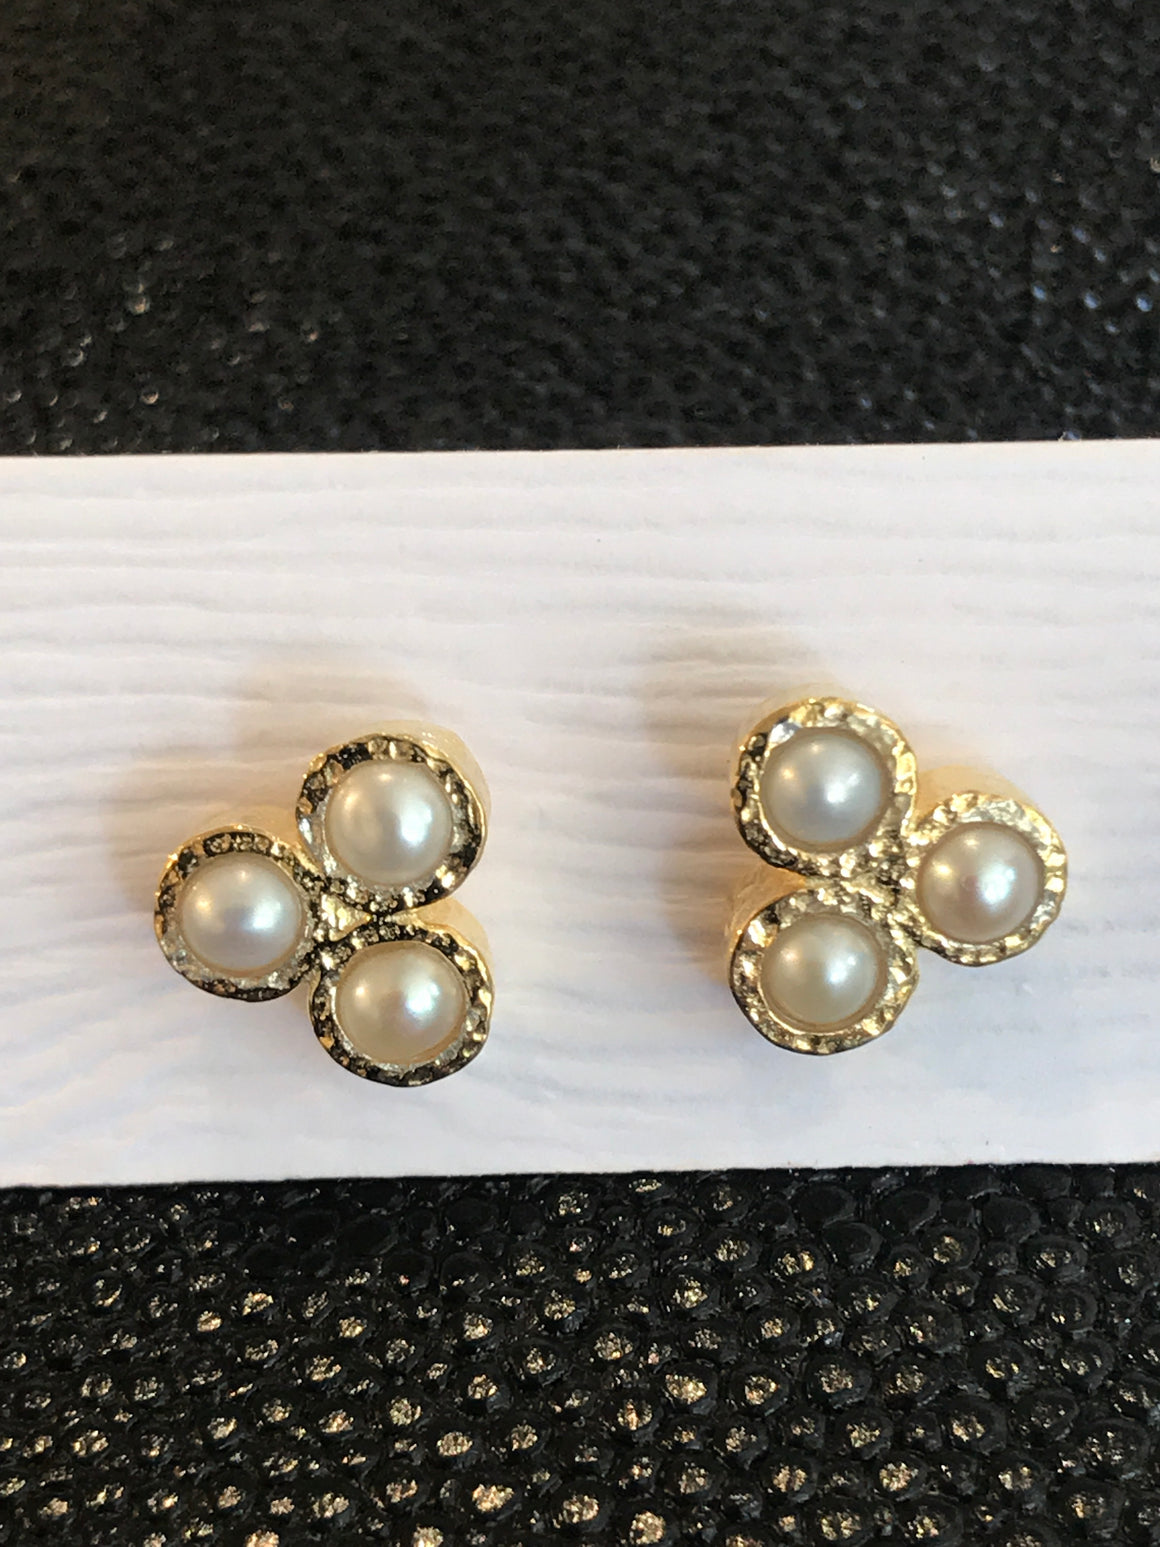 THREE PEARL STONE EARRINGS